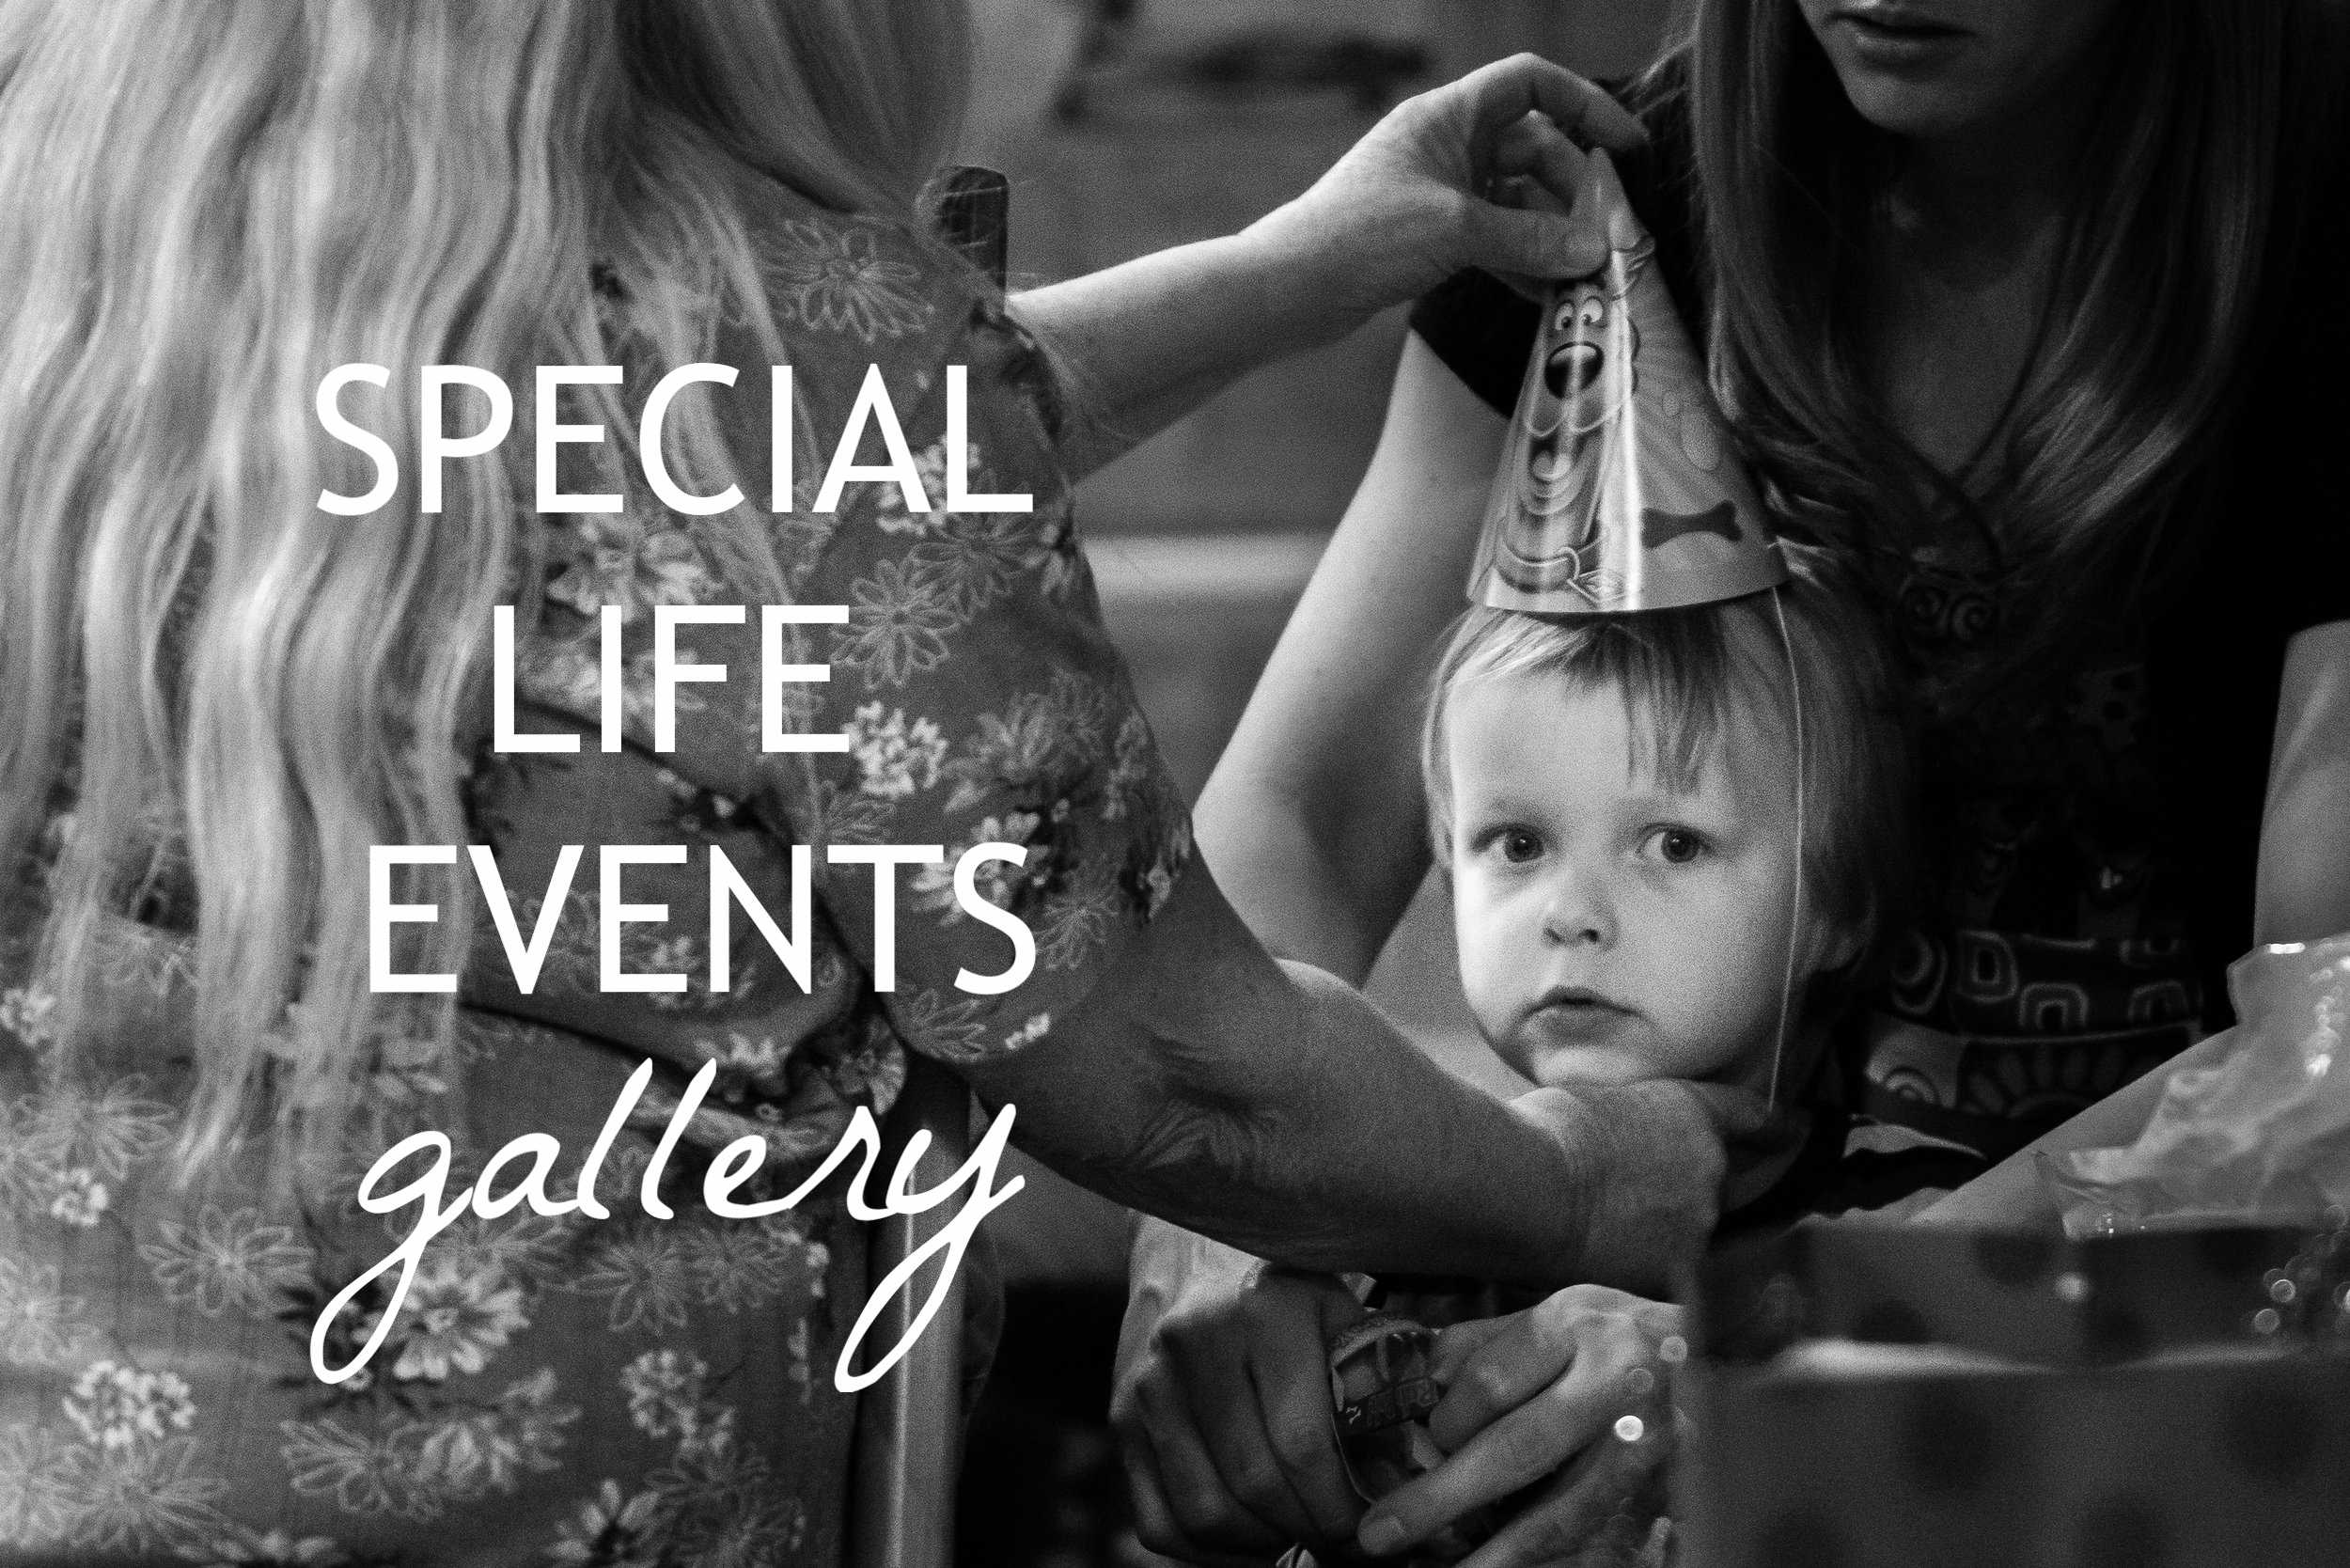 Special Life Events Gallery